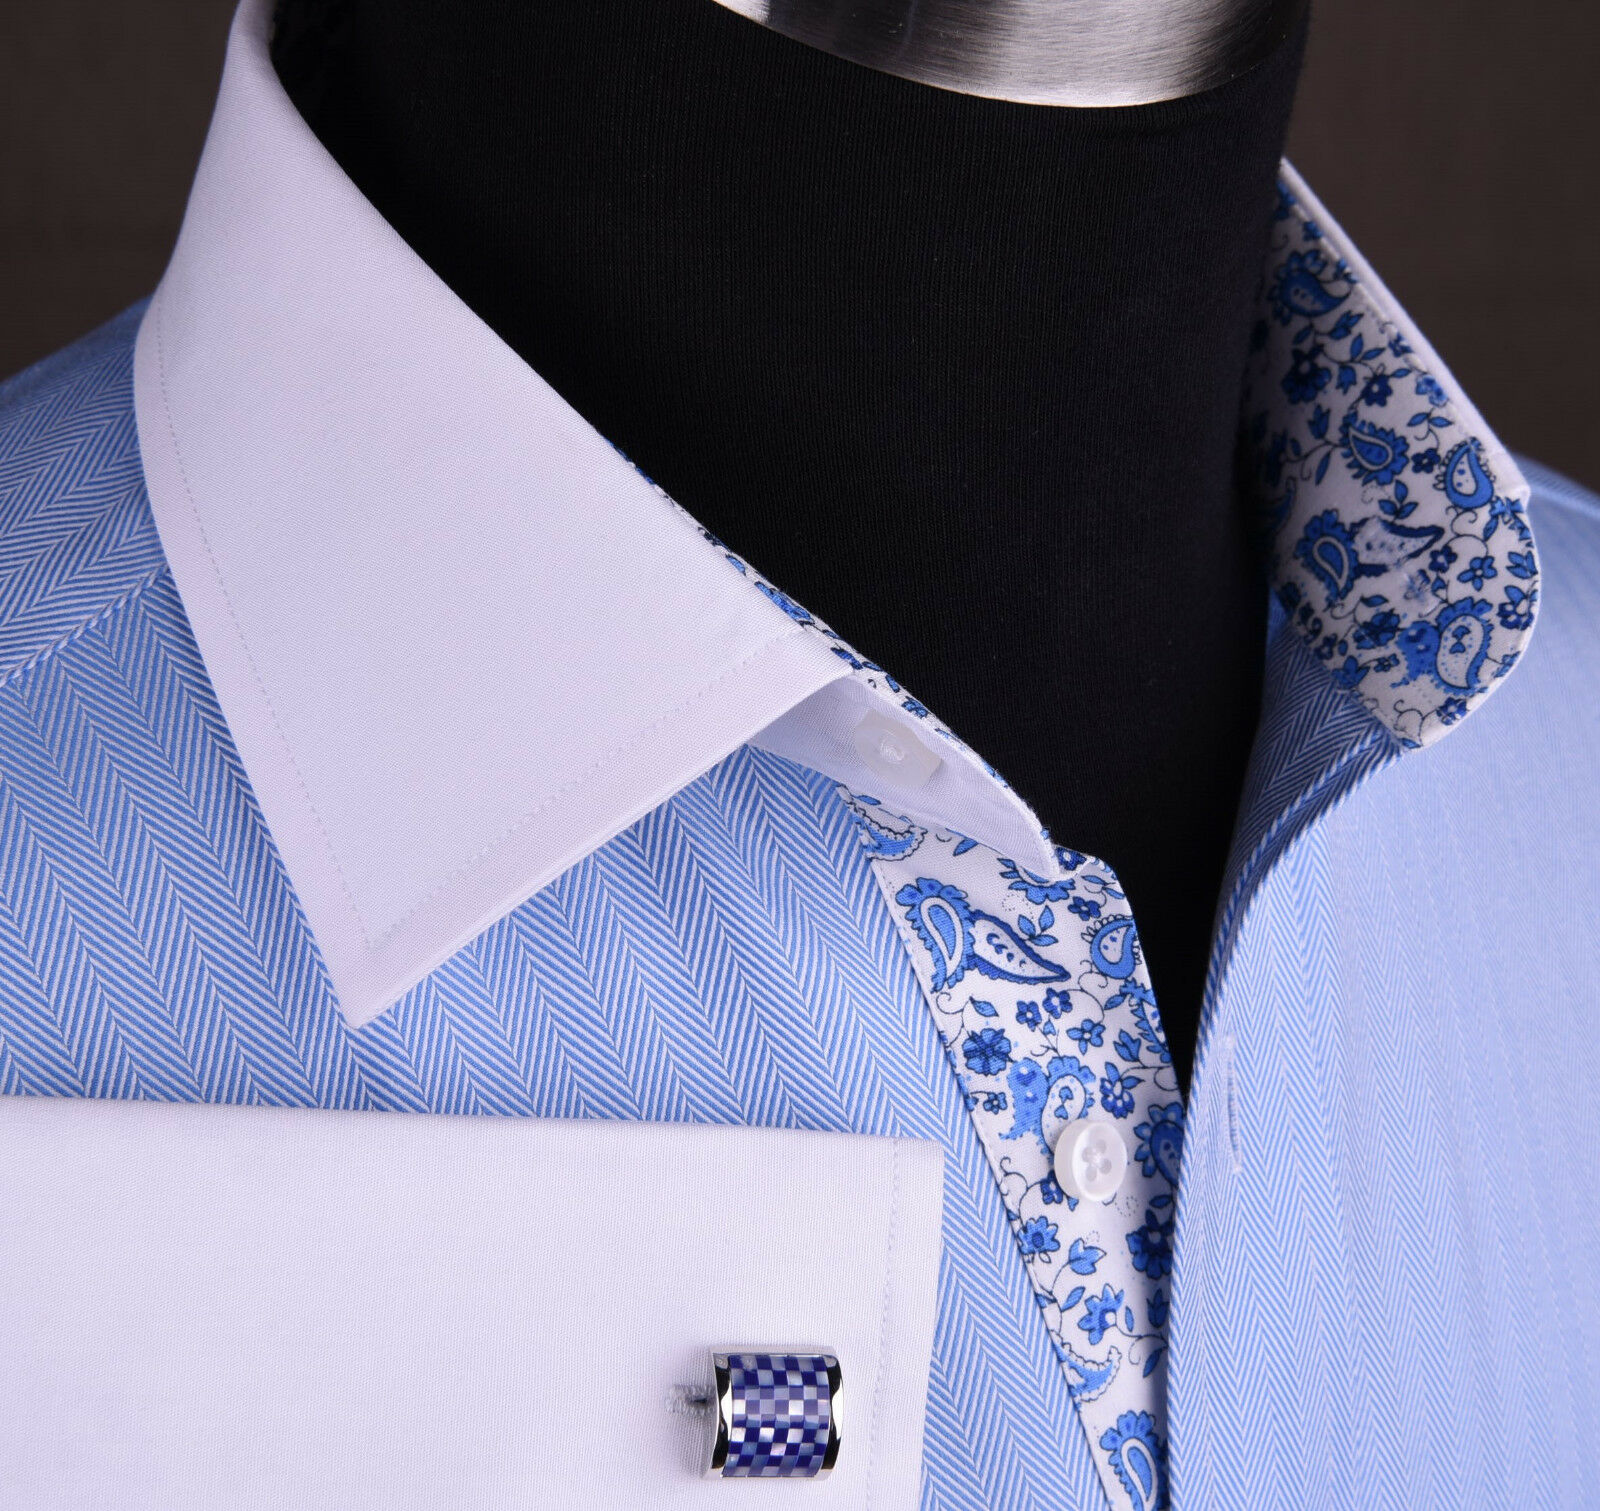 New Light Blue Dress Shirt Dignified Herringbone Twill Formal Business French A+